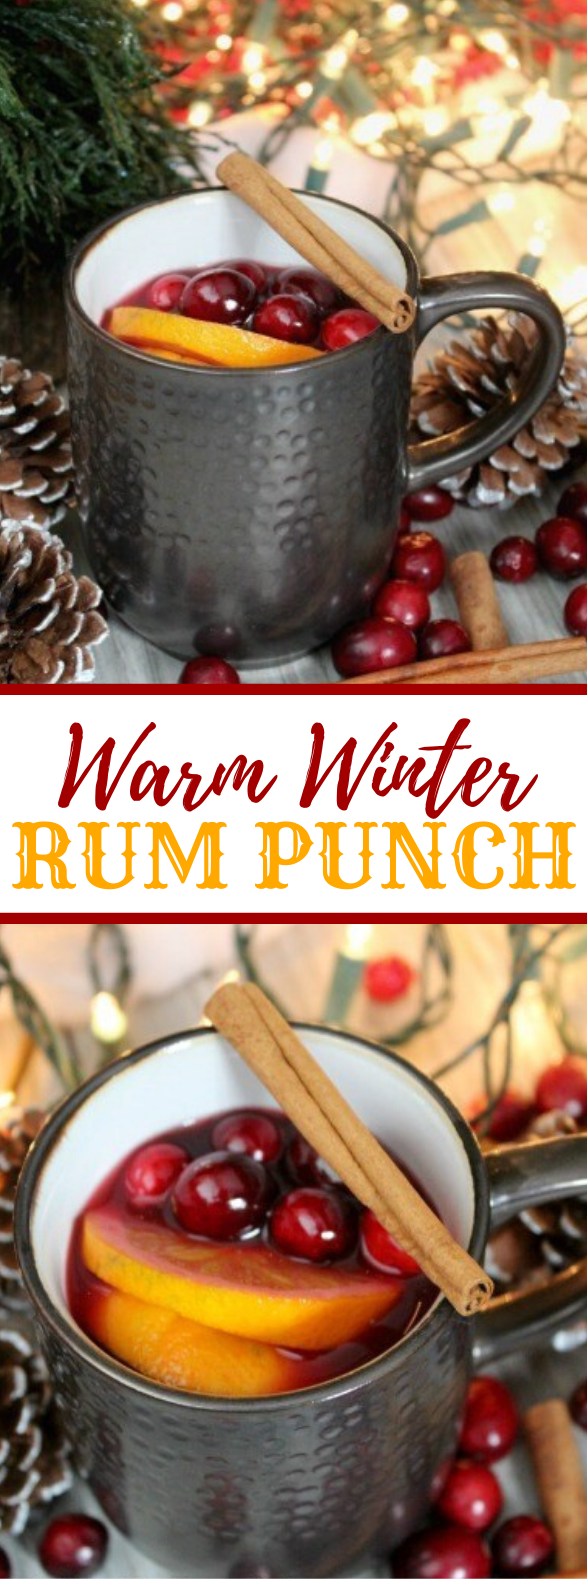 WARM WINTER (LOCAL) RUM PUNCH #cocktails #holidaydrink